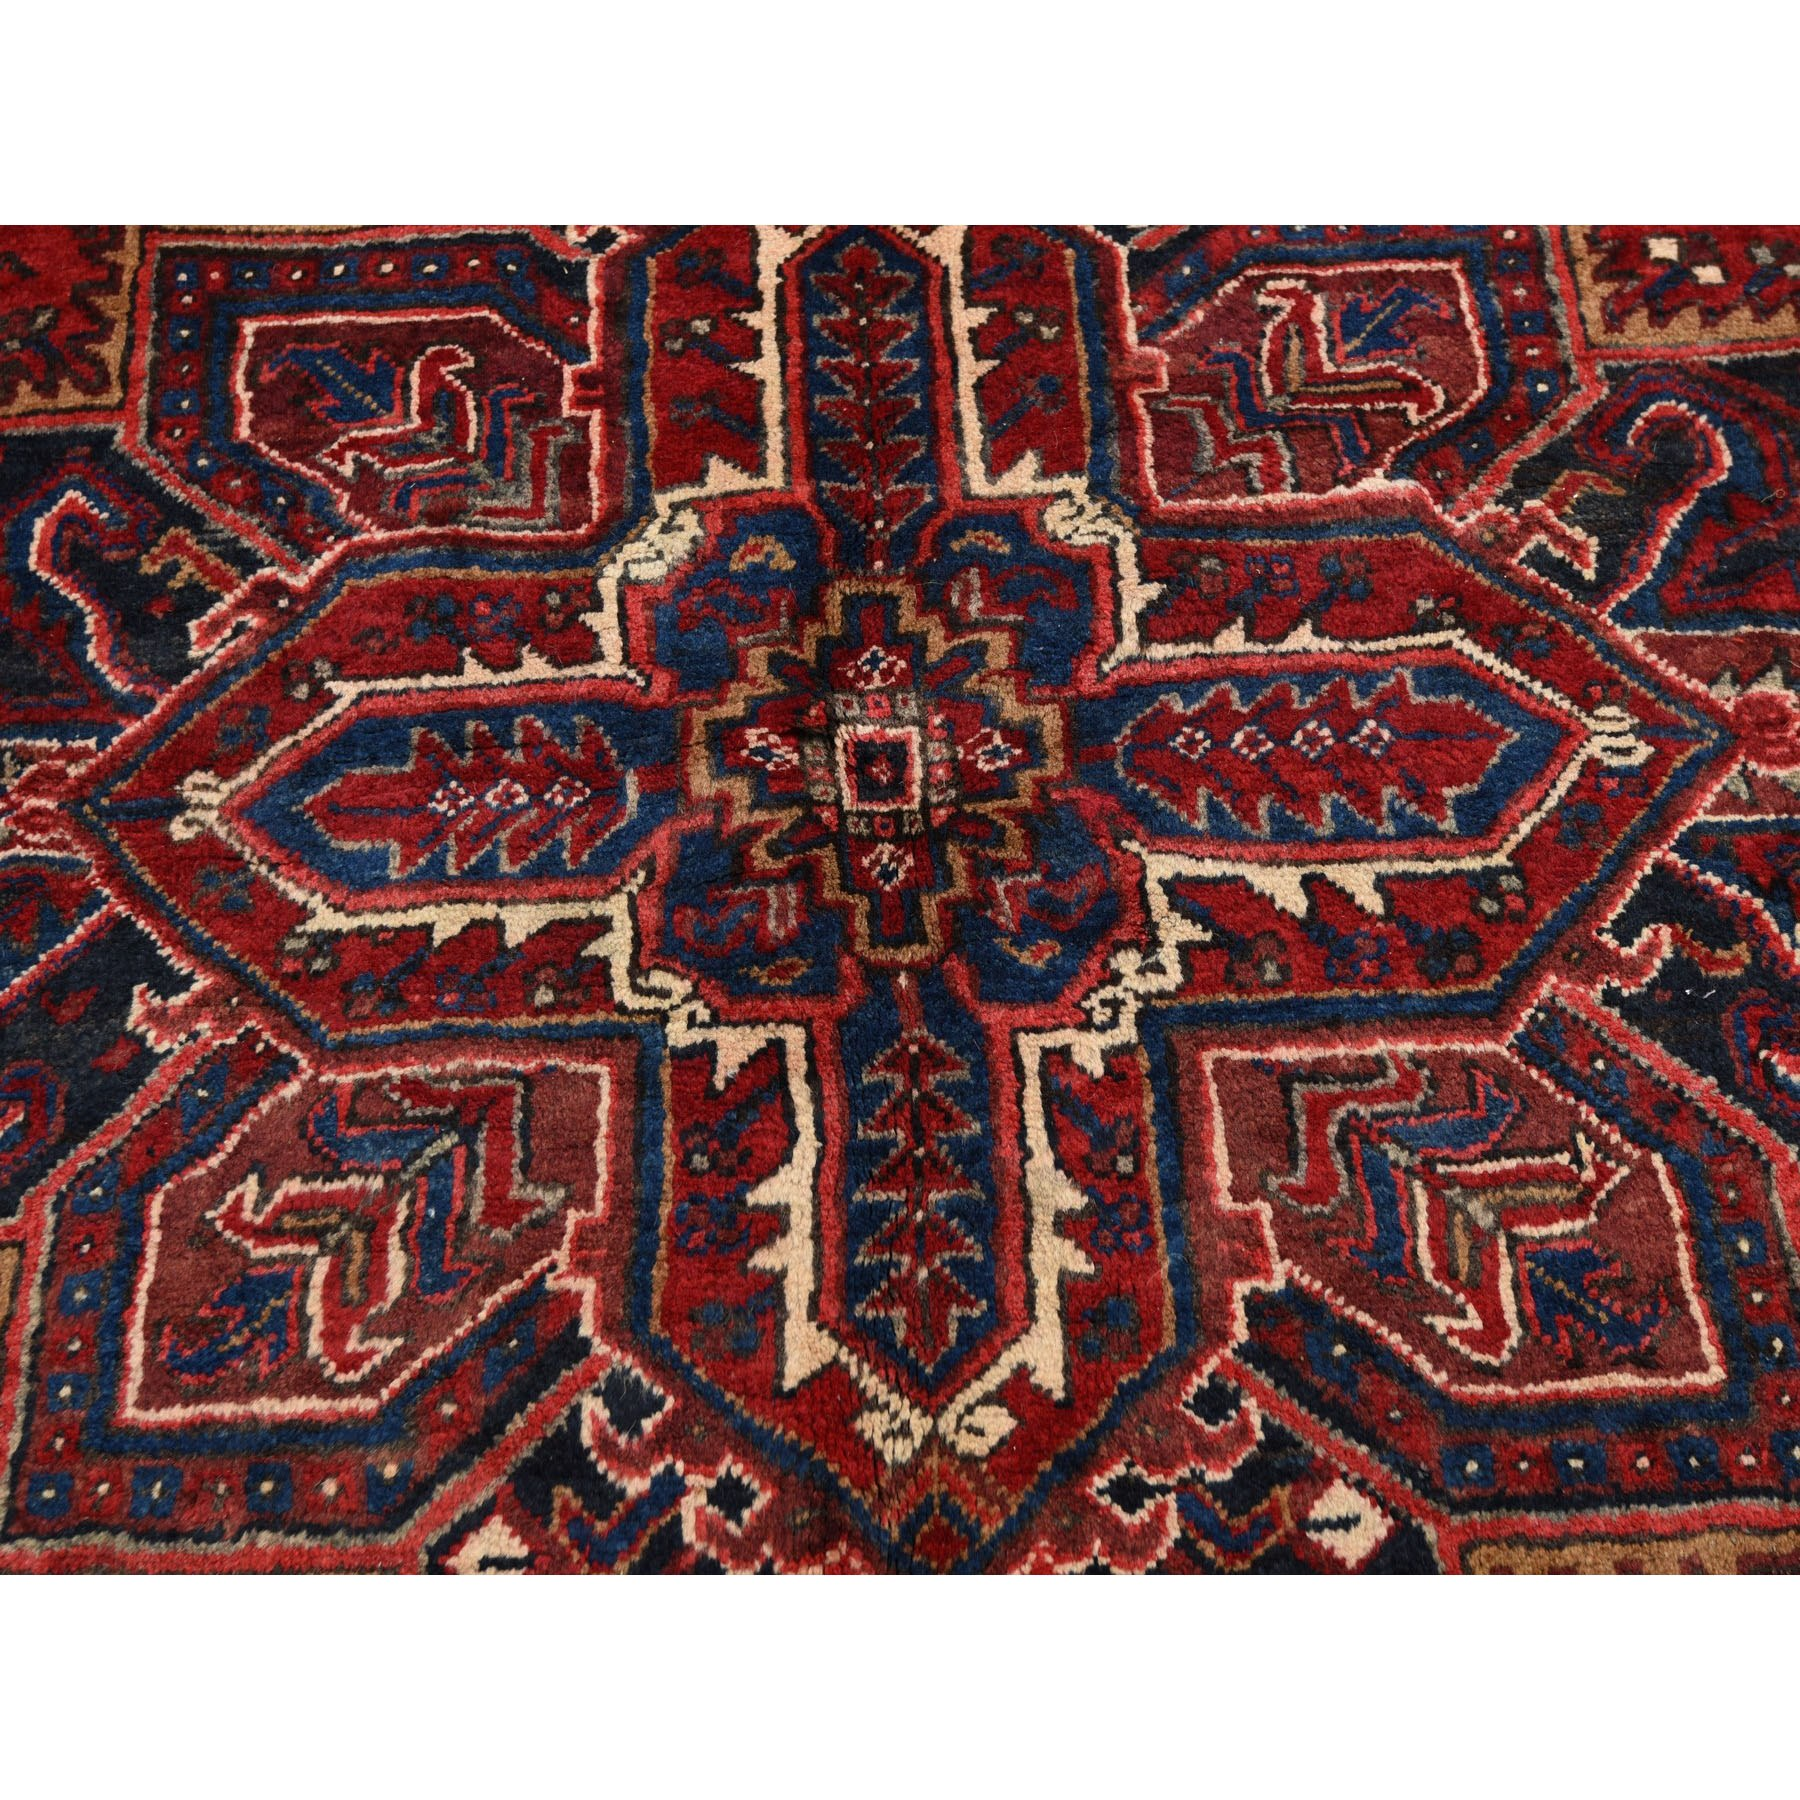 """7'3""""x10'4"""" Red Semi Antique Persian Heriz Geometric Design Thick and Plush Hand Knotted Oriental Rug"""